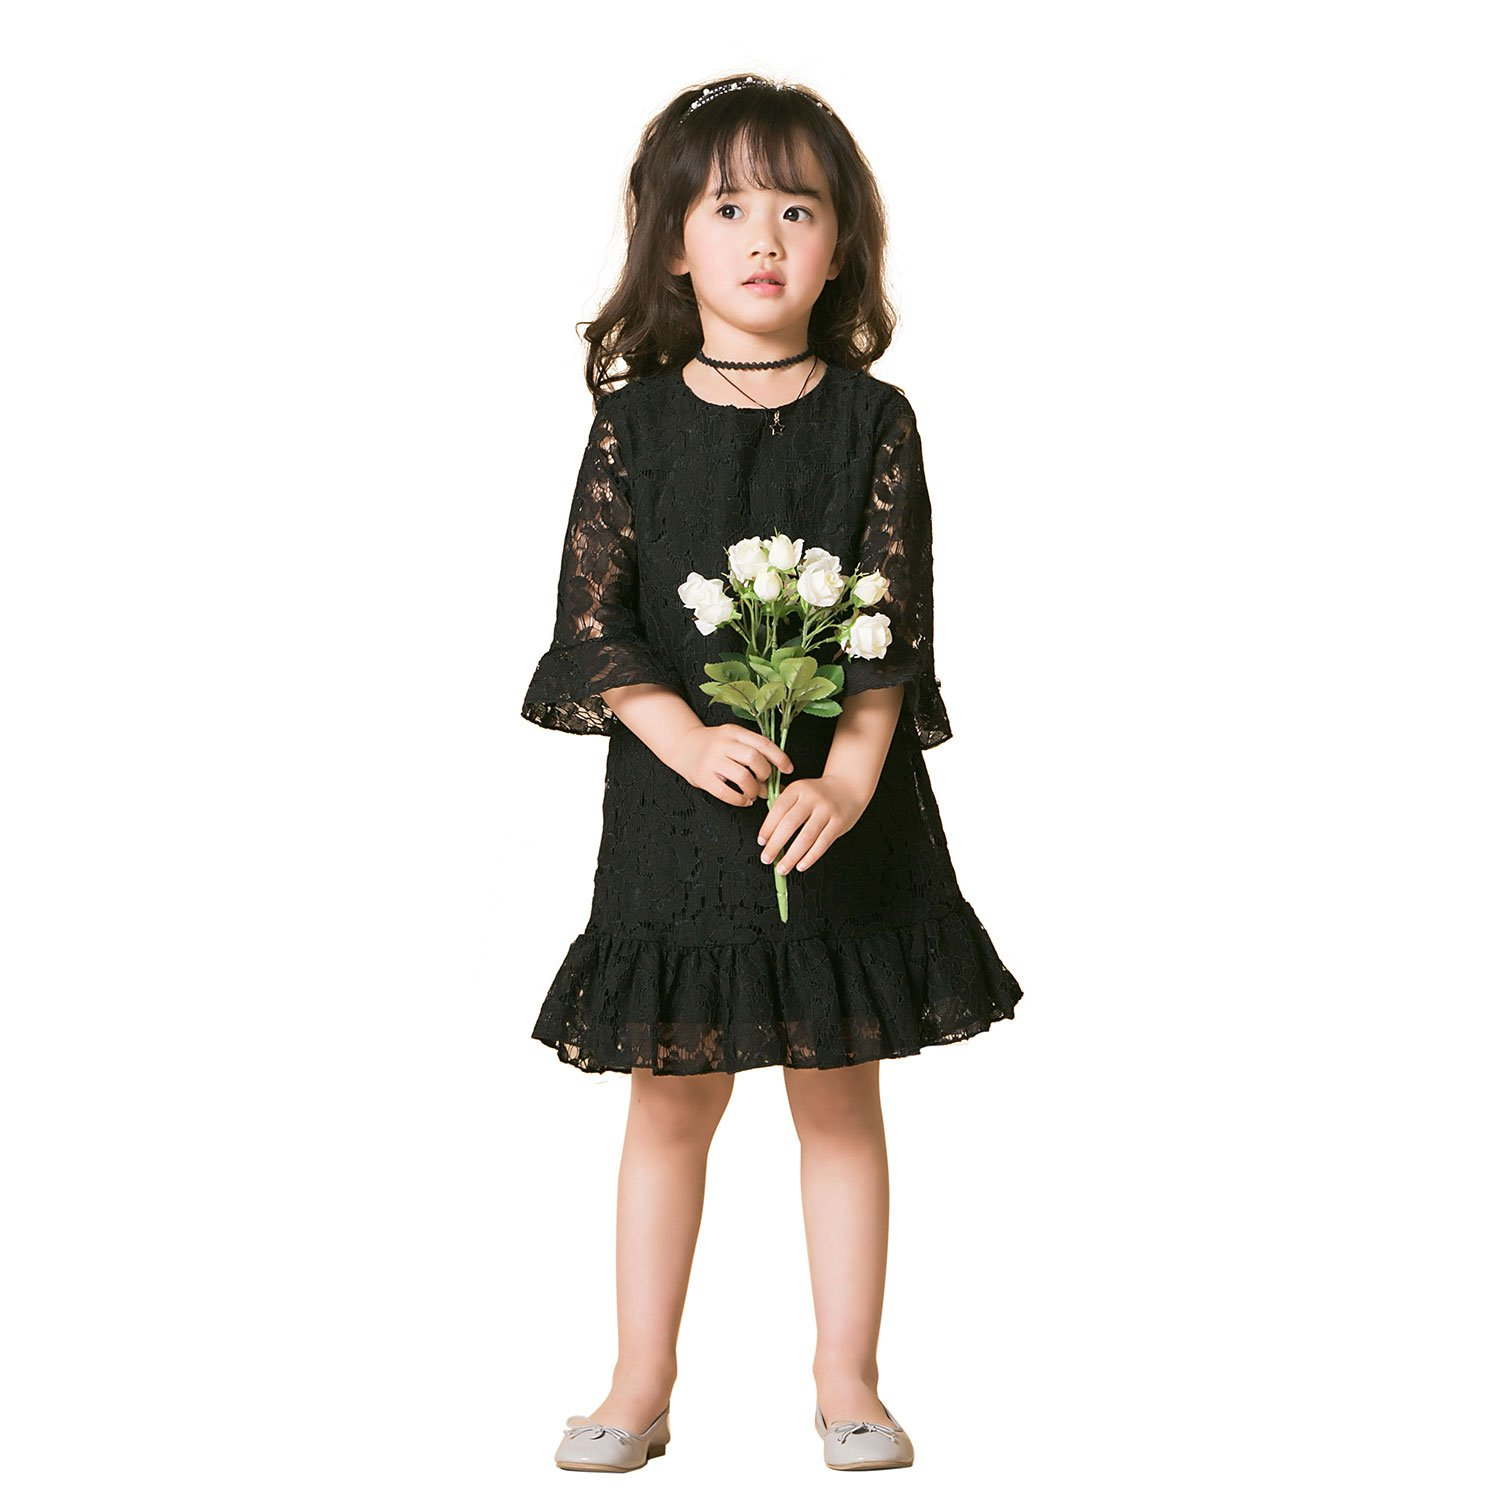 918689ec1578 Amazon.com: Girl Lace Sleeves Dress, Flower Girl Dress Toddler Country  Party Wedding Dress: Clothing